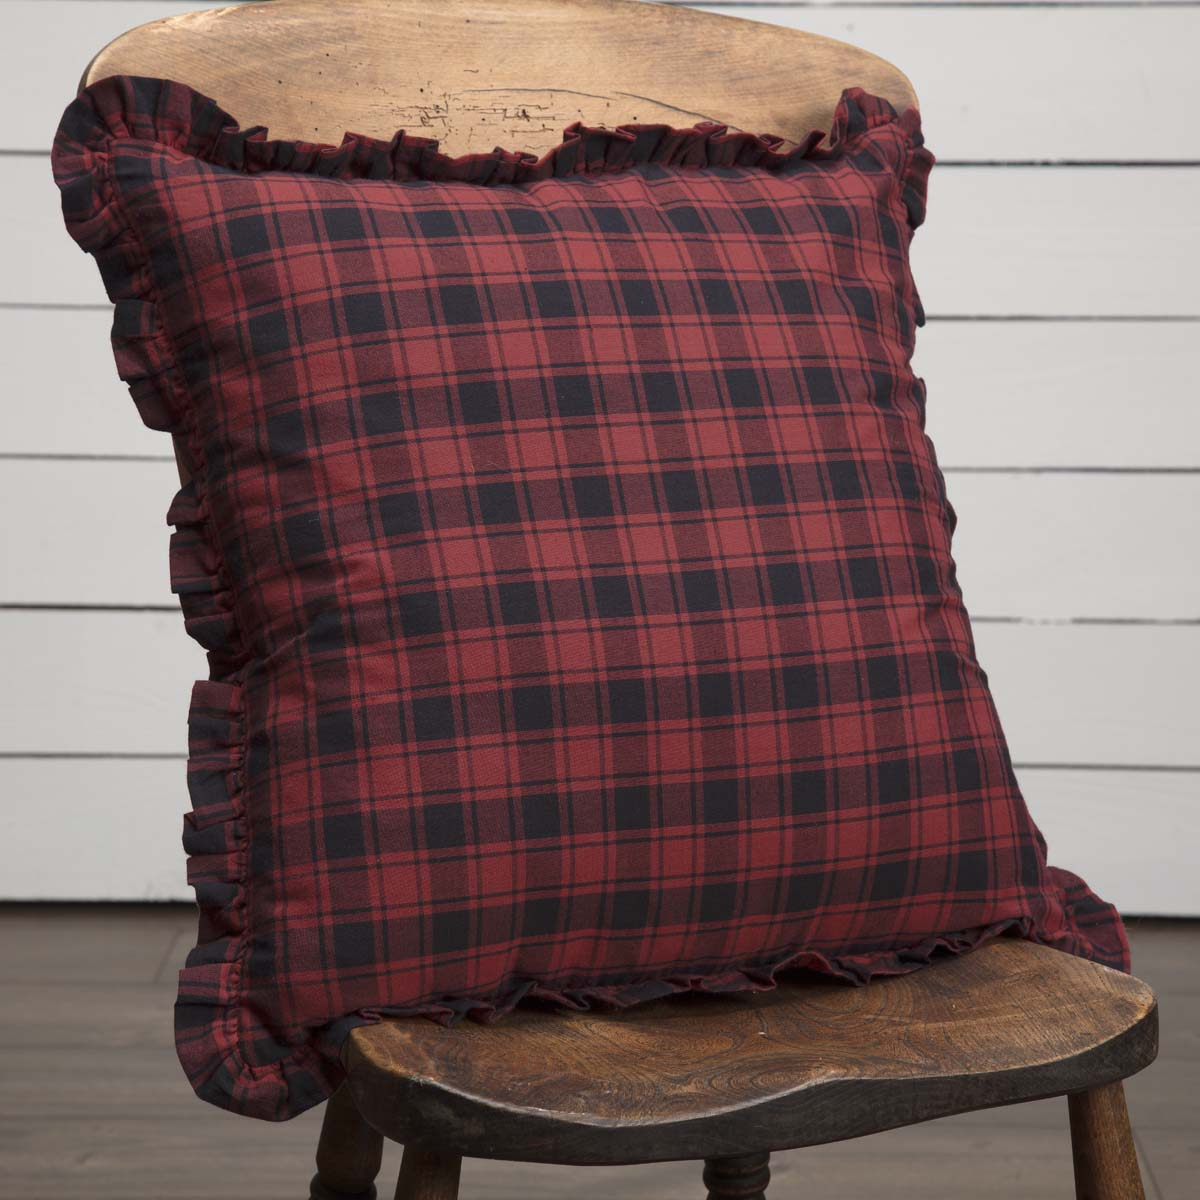 Cumberland Plaid Pillow 18x18 - Woodrol